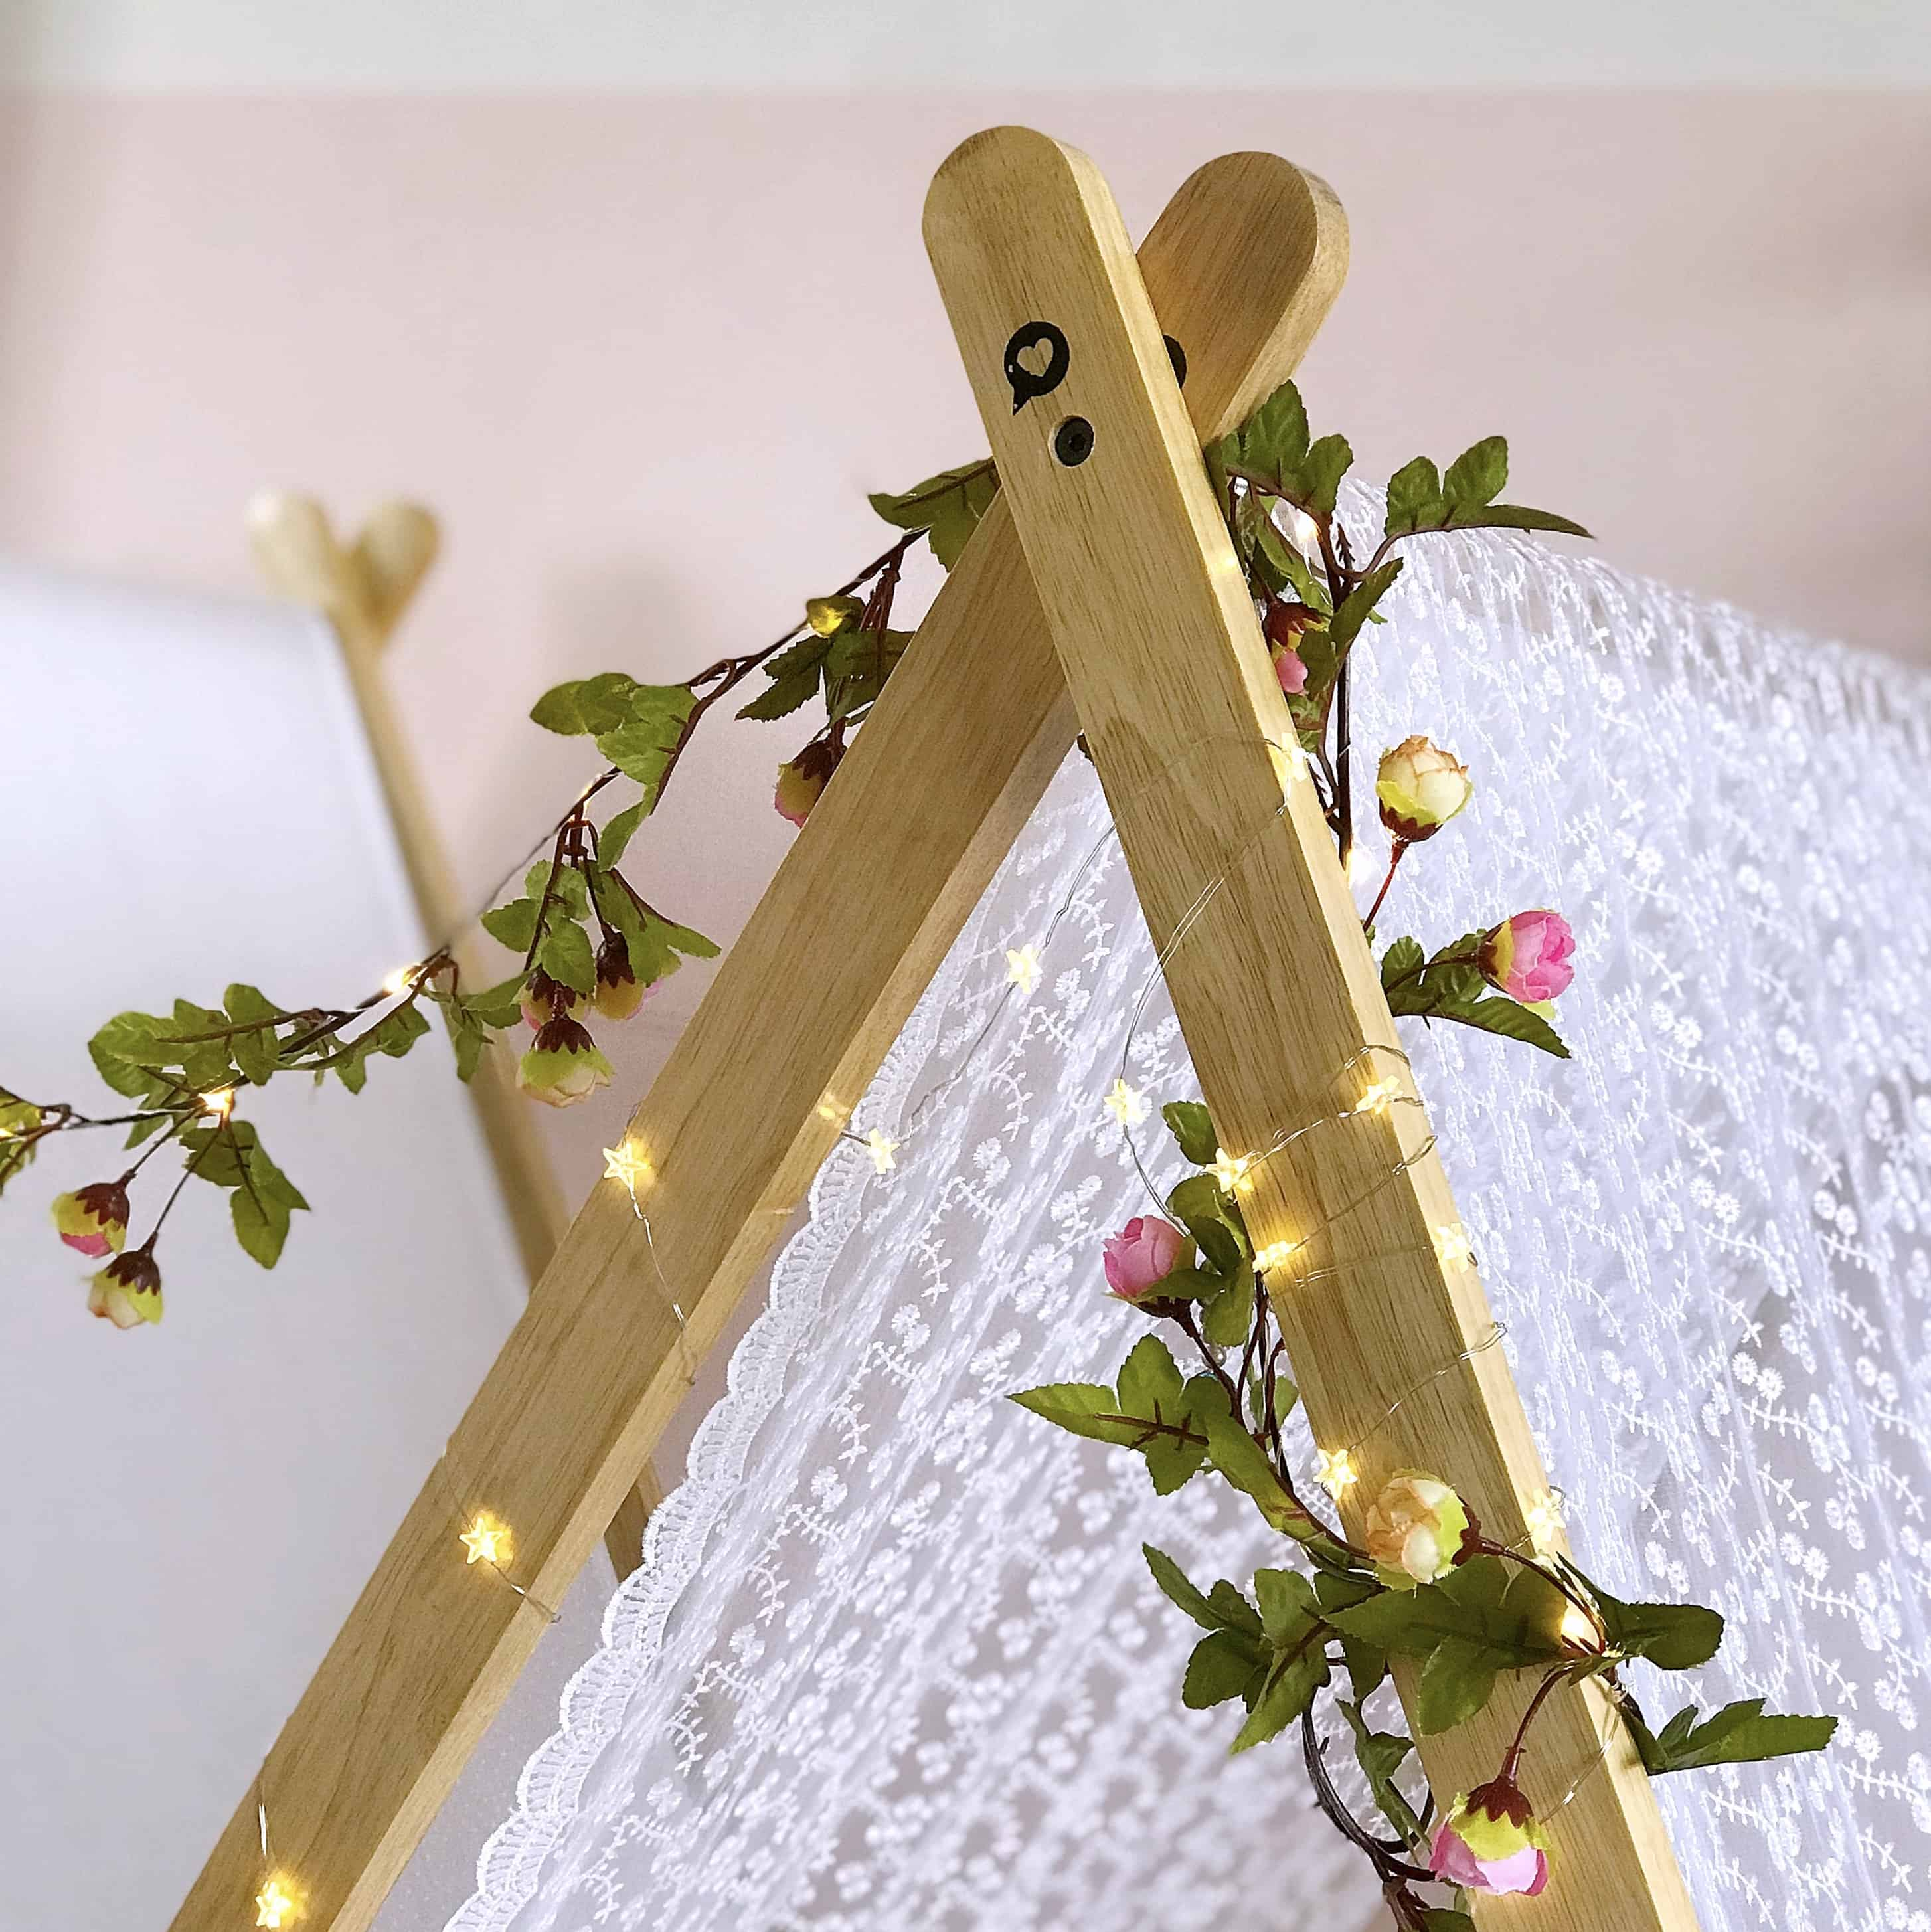 Star fairy lights and light up floral garland on a kids indoor tent